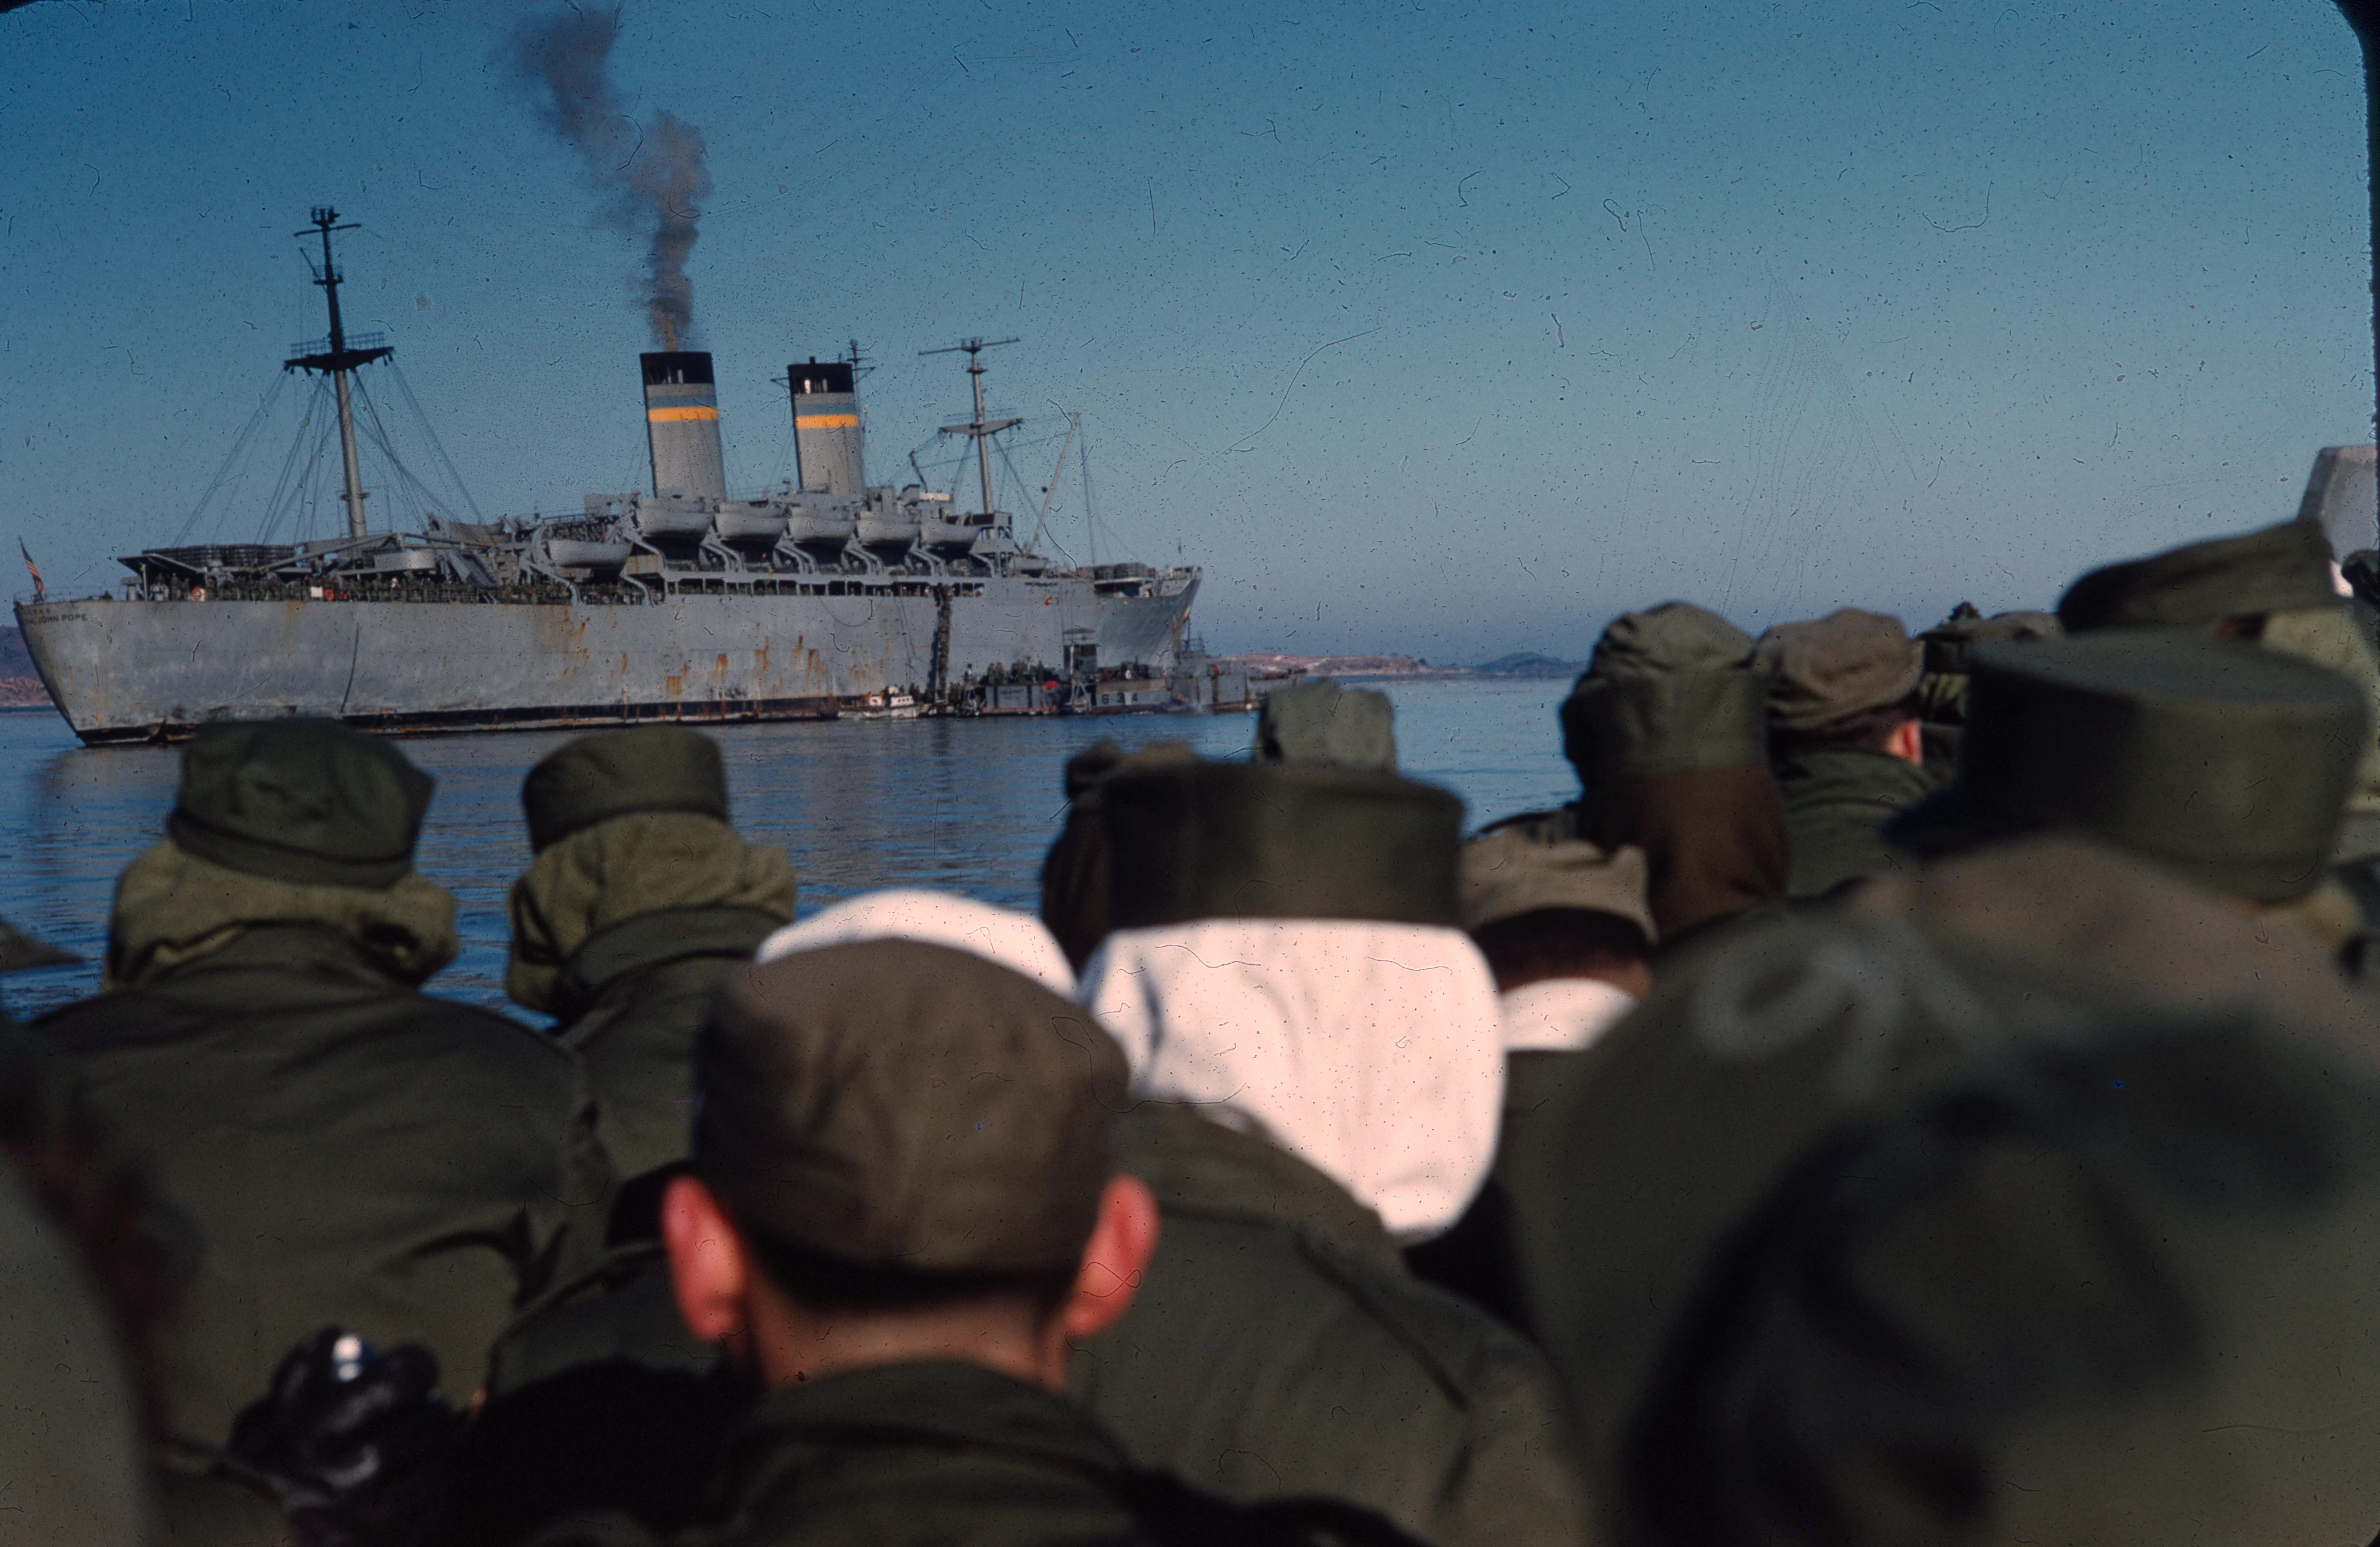 USNS General John Pope, 1954 The voyage home, 1954